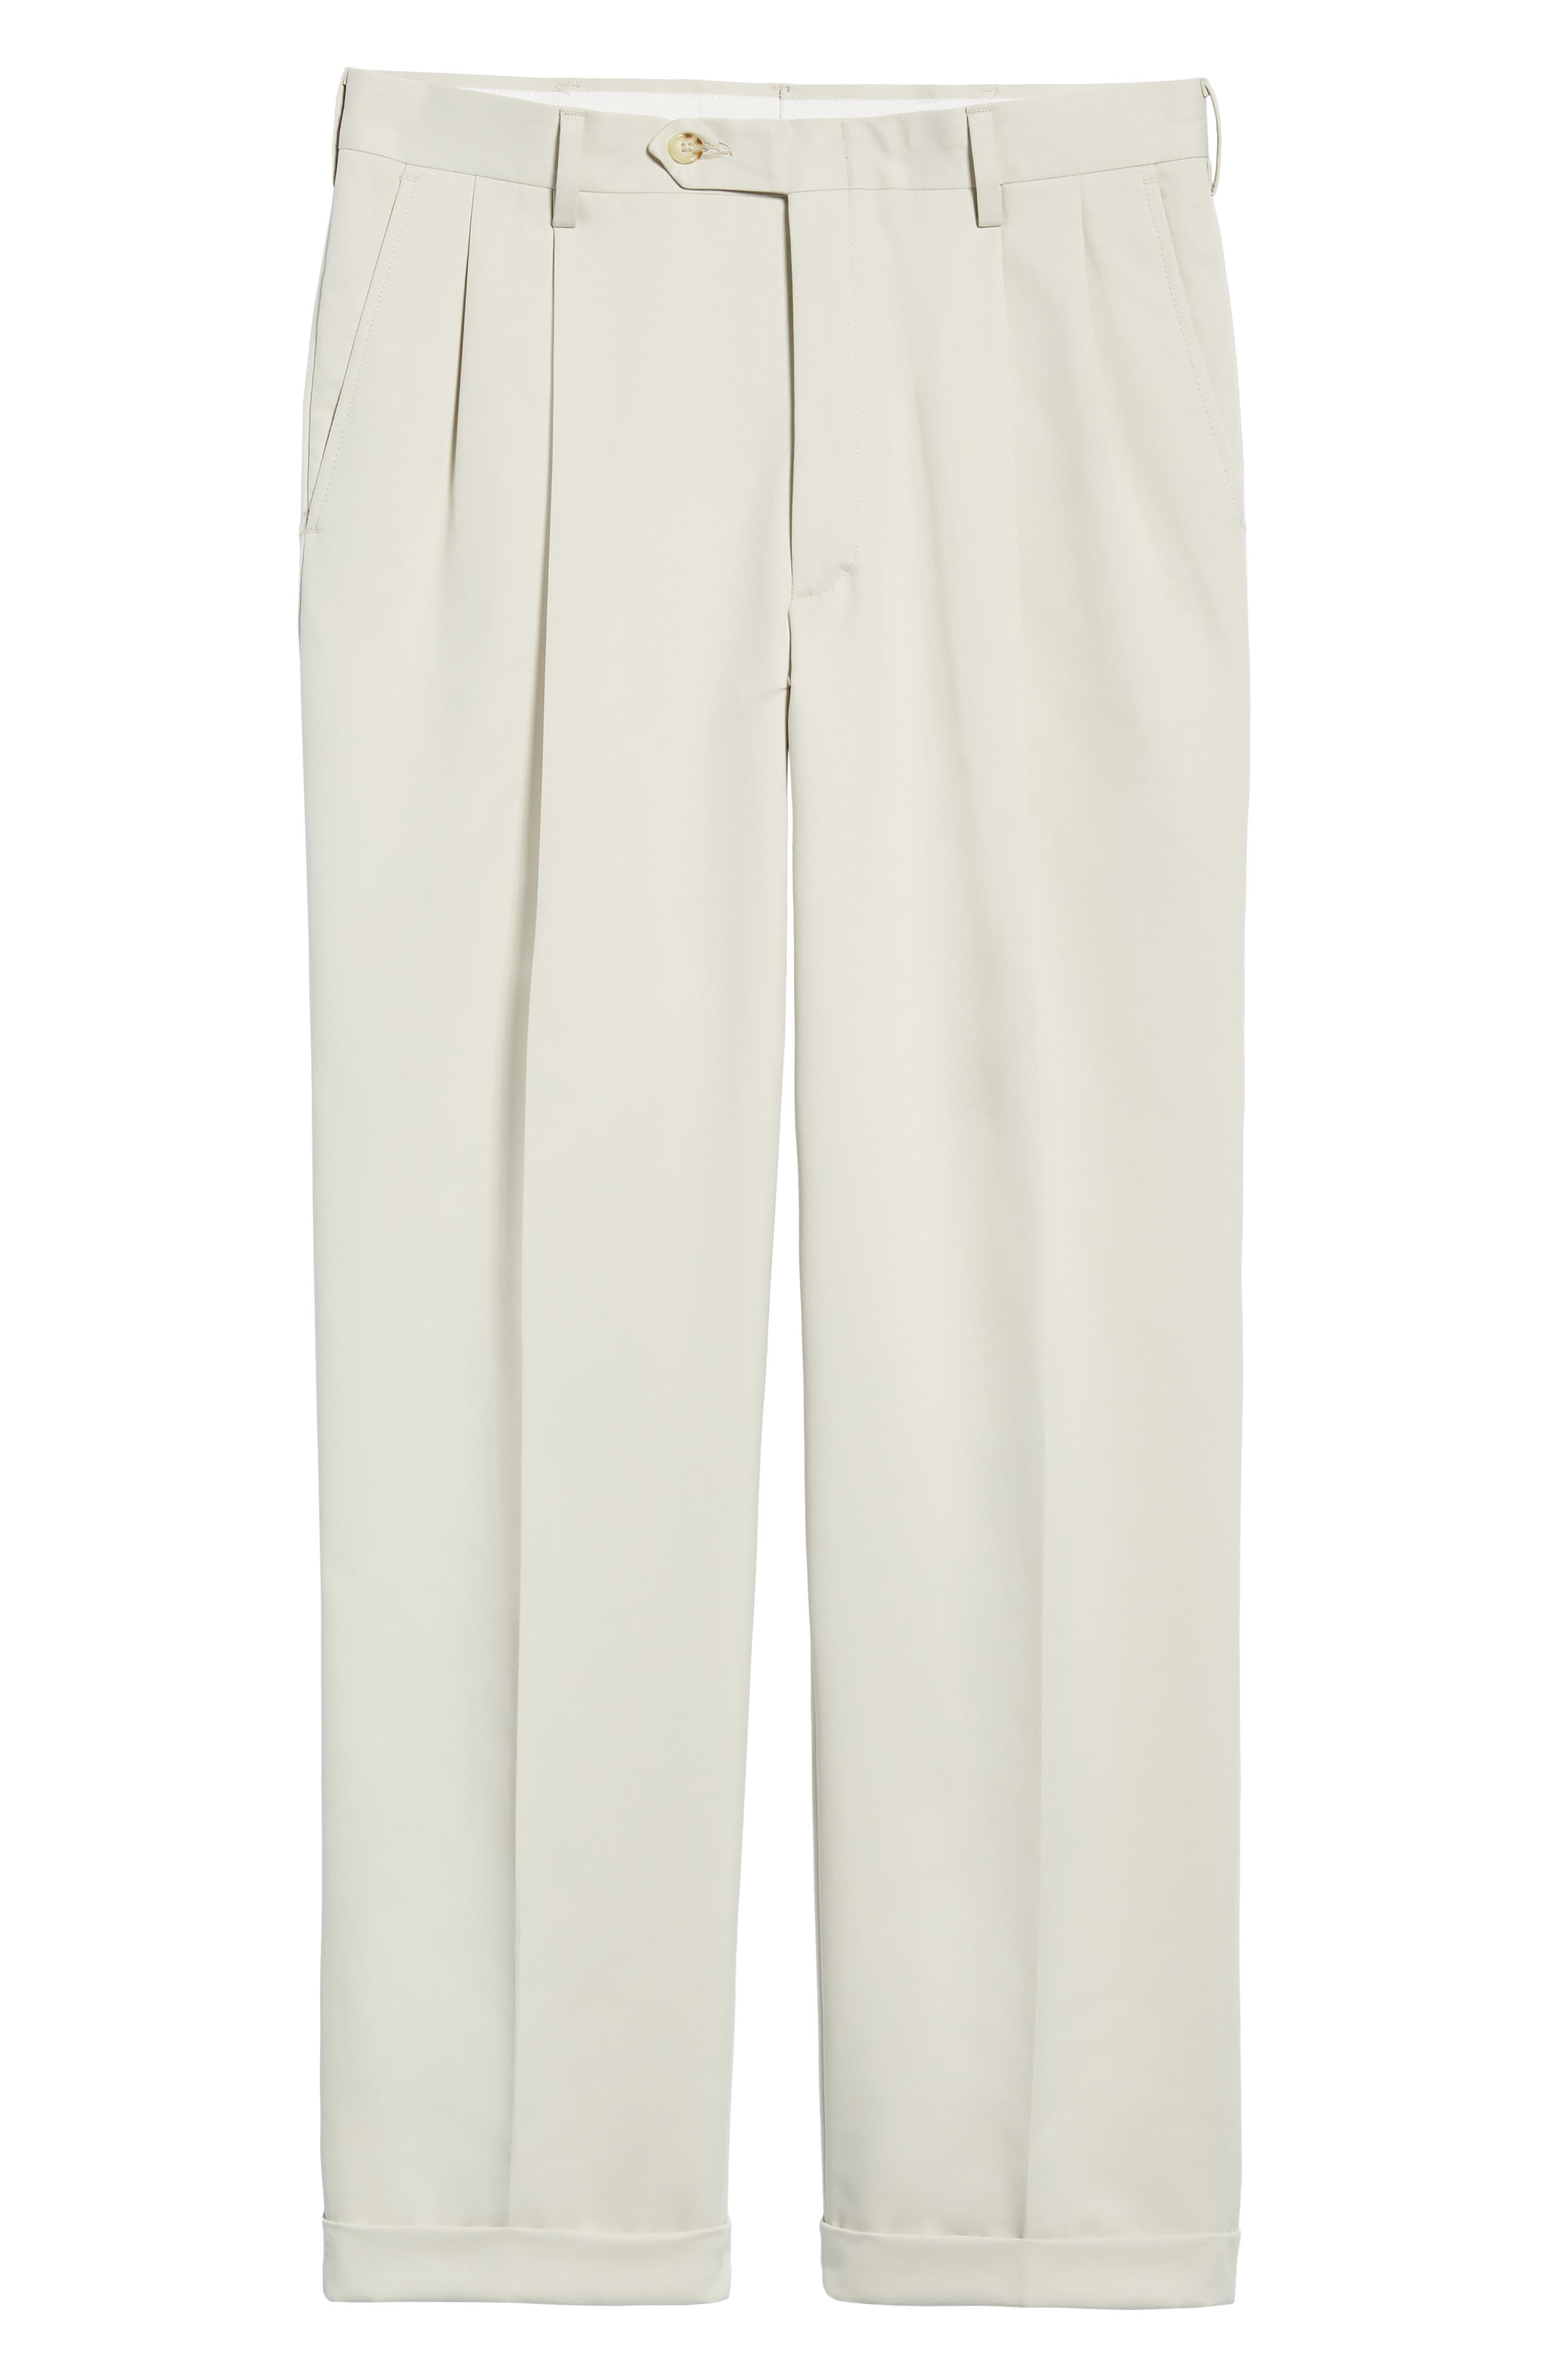 BERLE,                             Classic Fit Pleated Microfiber Performance Trousers,                             Alternate thumbnail 6, color,                             GREY